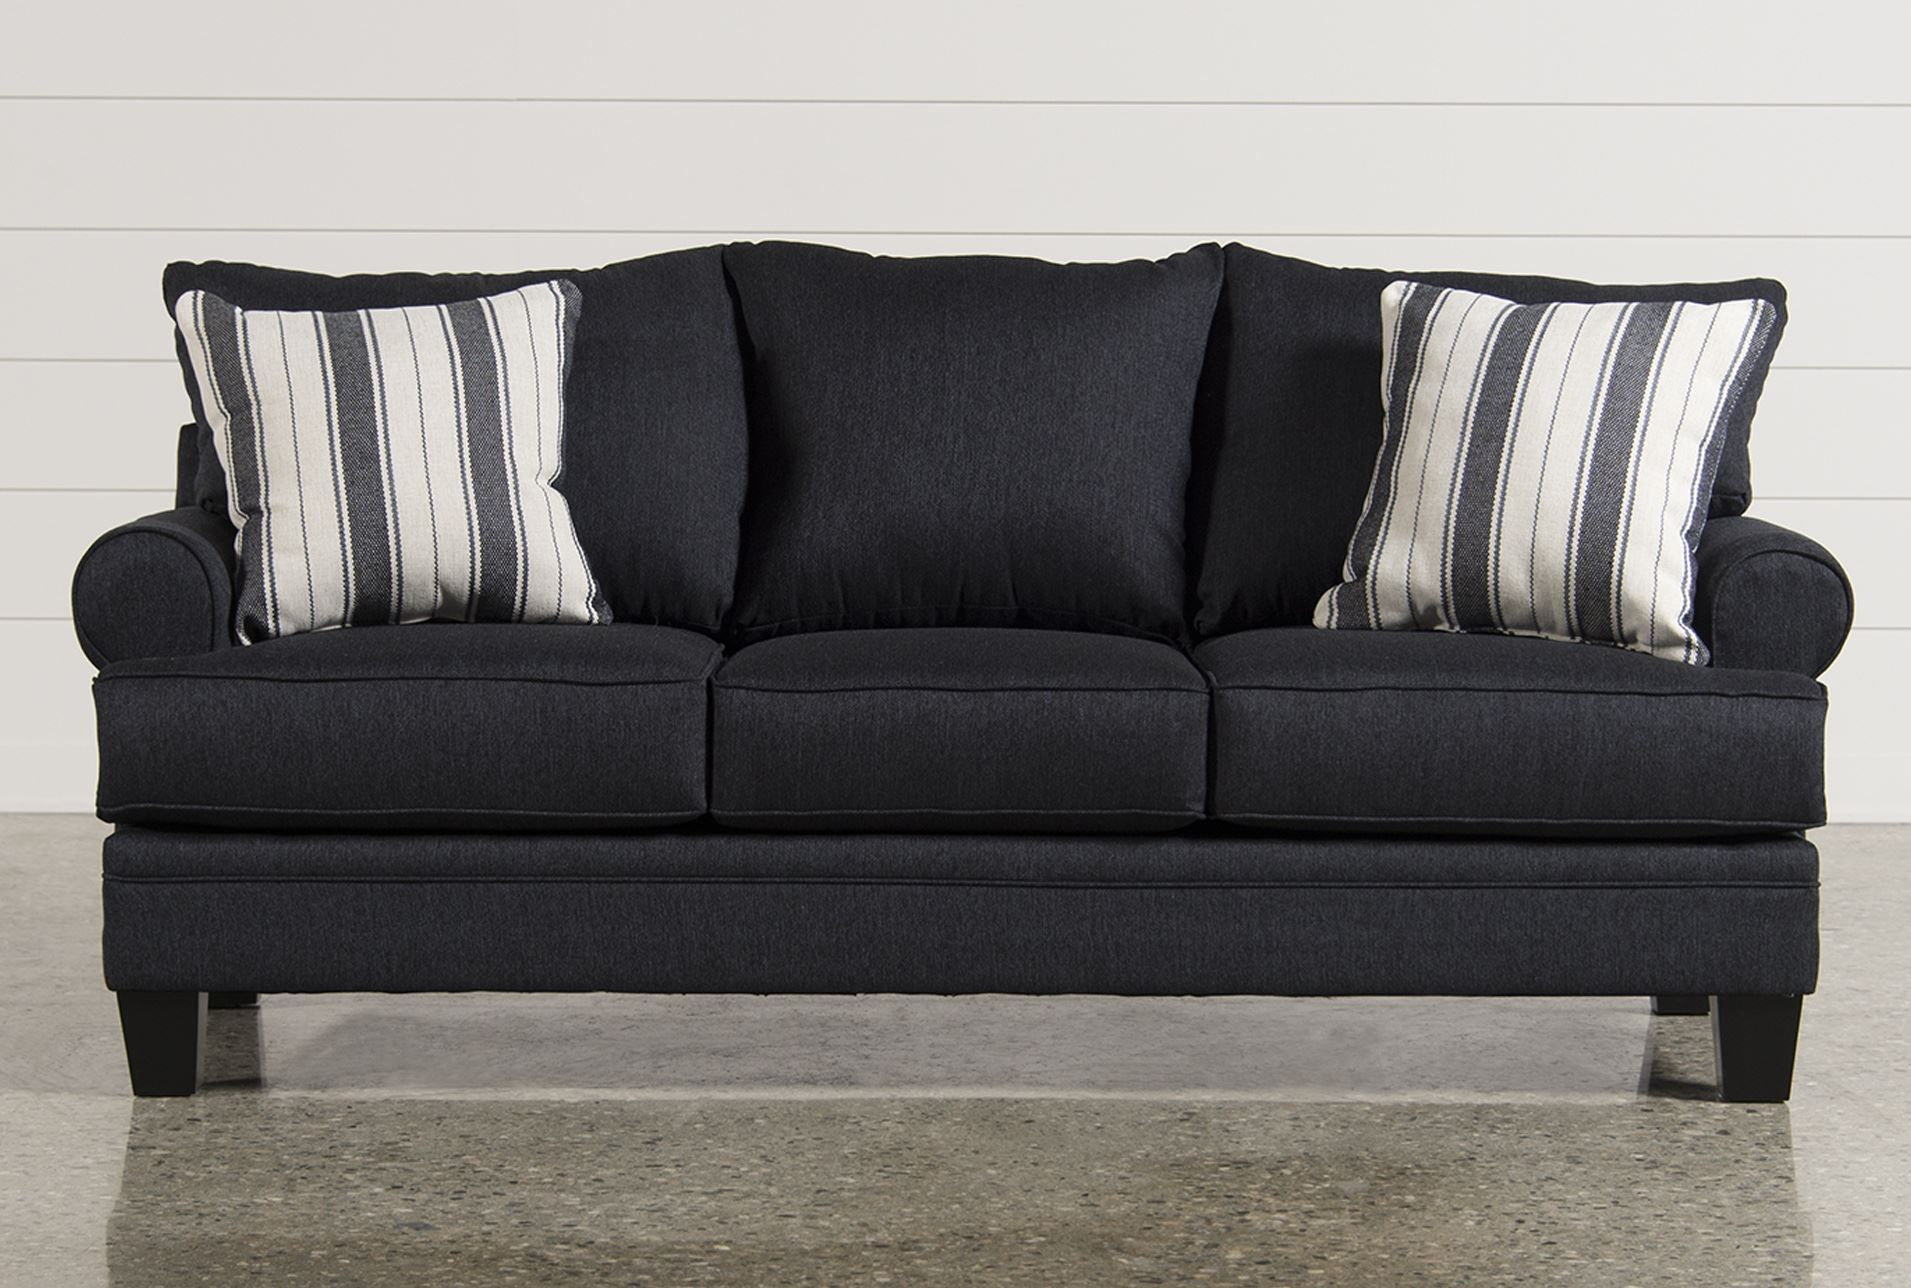 Callie Sofa | Furniture | Pinterest | Living Spaces, Kitchen Living For Callie Sofa Chairs (View 4 of 20)